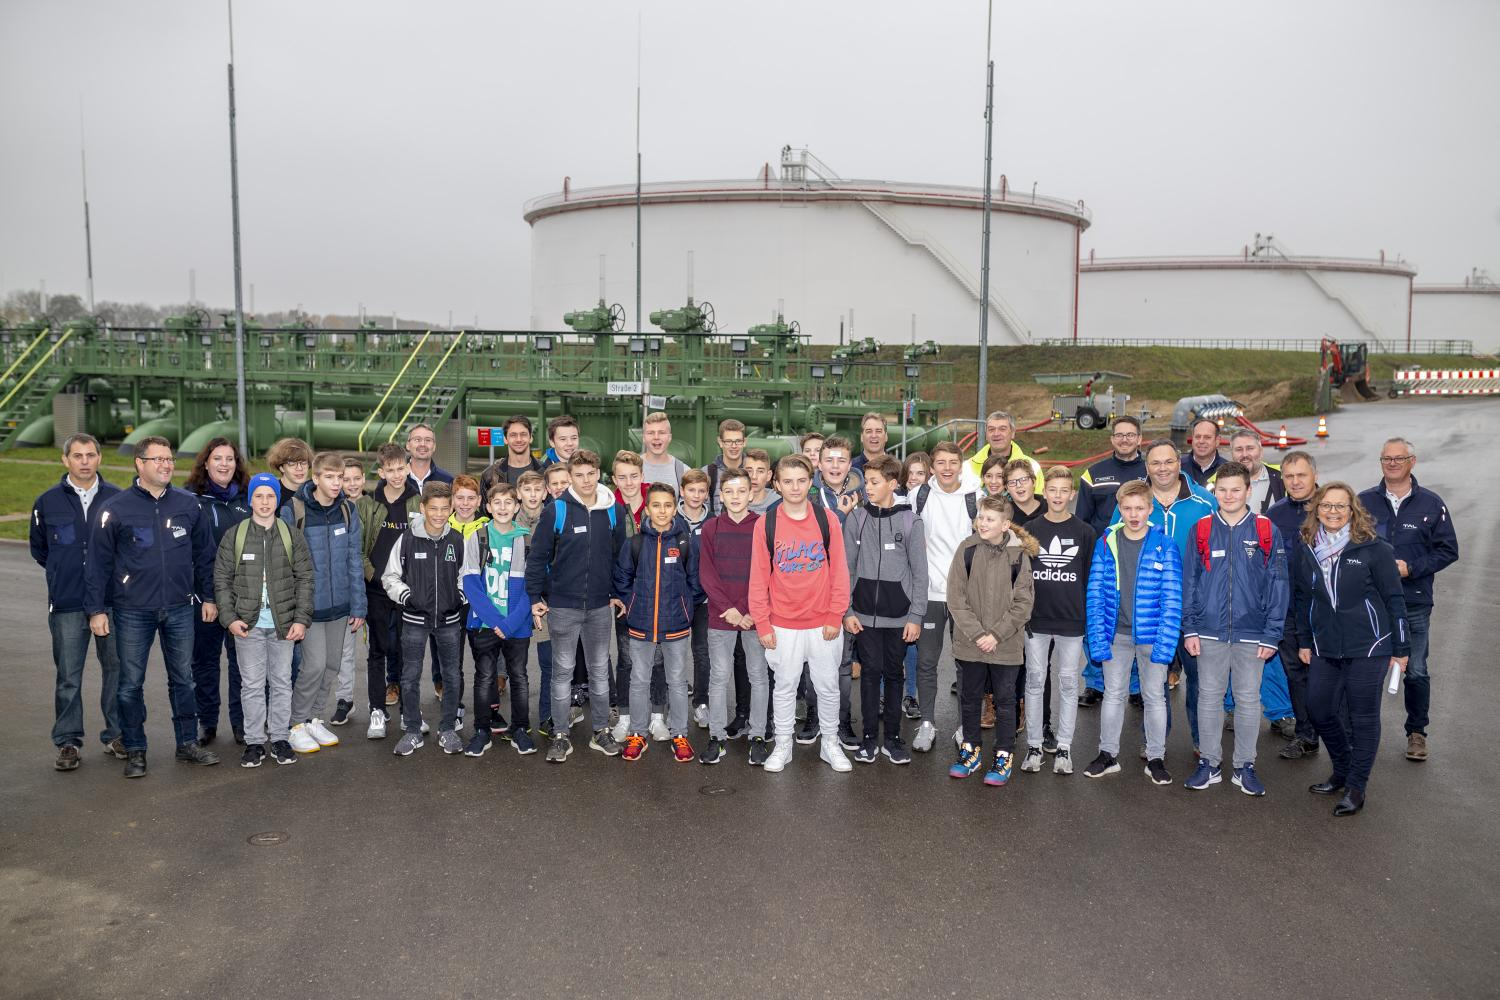 SCHOOLS DAY AT THE TANK FARM IN LENTING/GERMANY